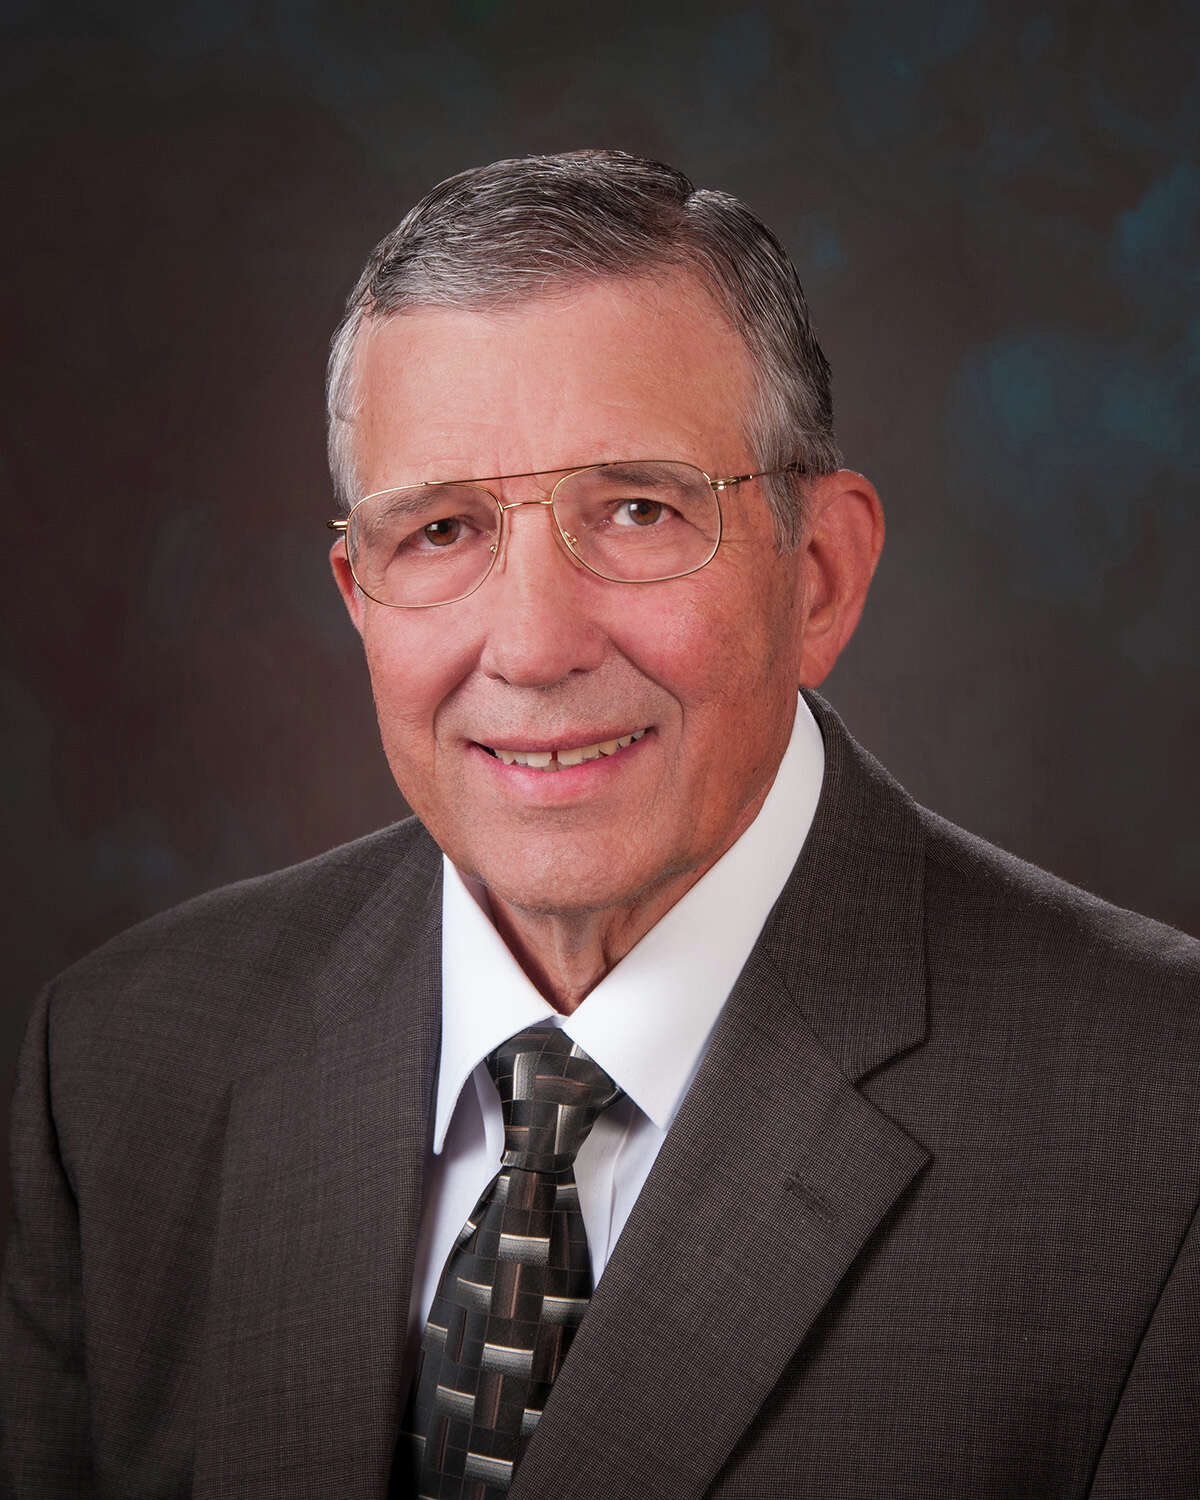 Mayor Wendell Dunlap is set to cap 16 years of service on the Plainview City Council on Tuesday.